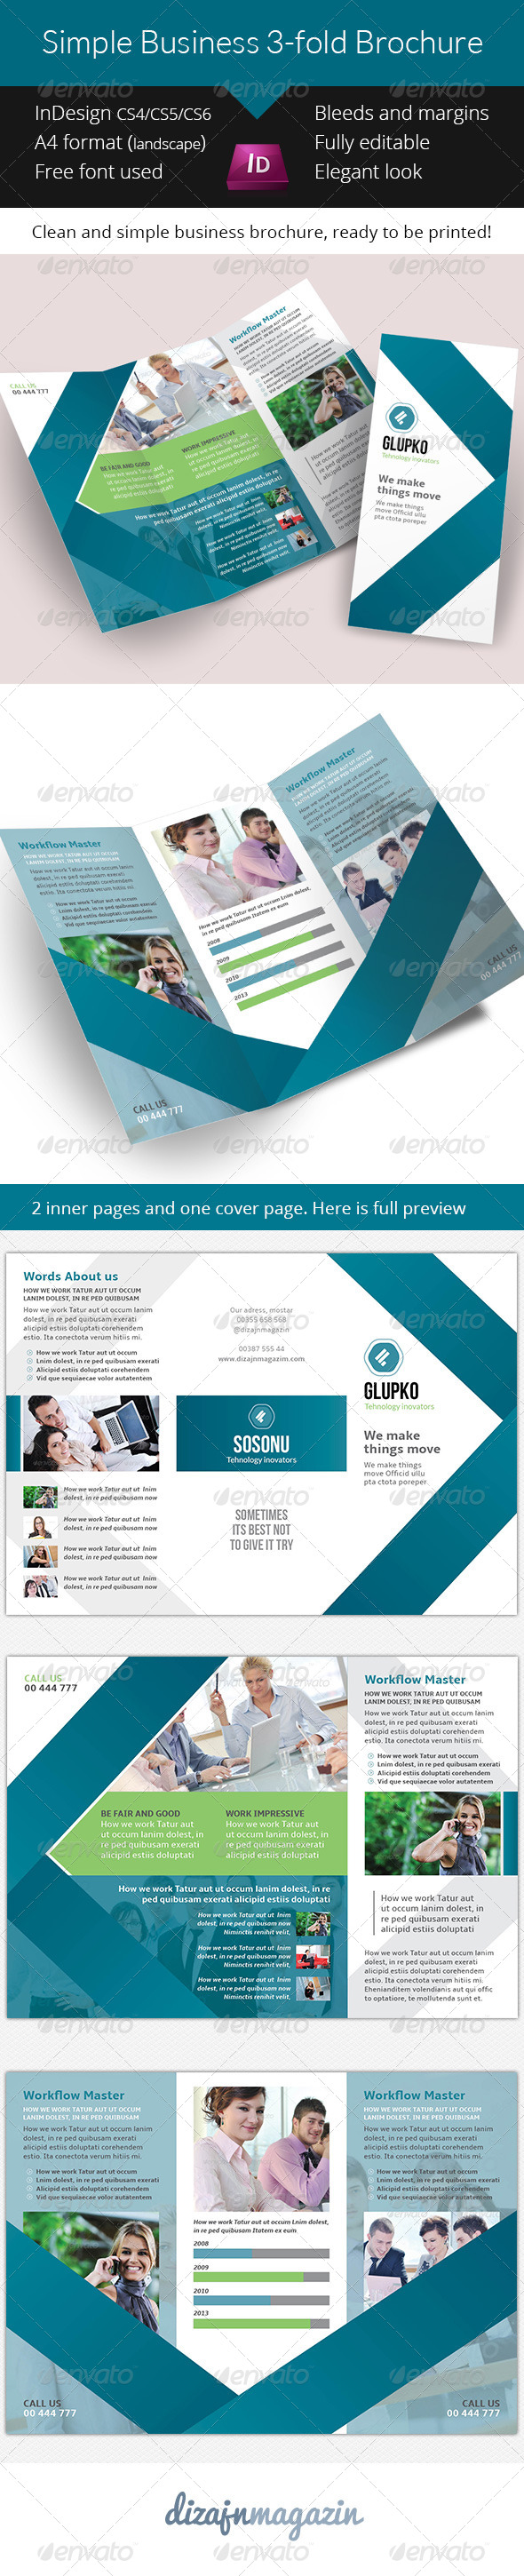 Simple Business Fold Brochure Indesign Template  Indesign